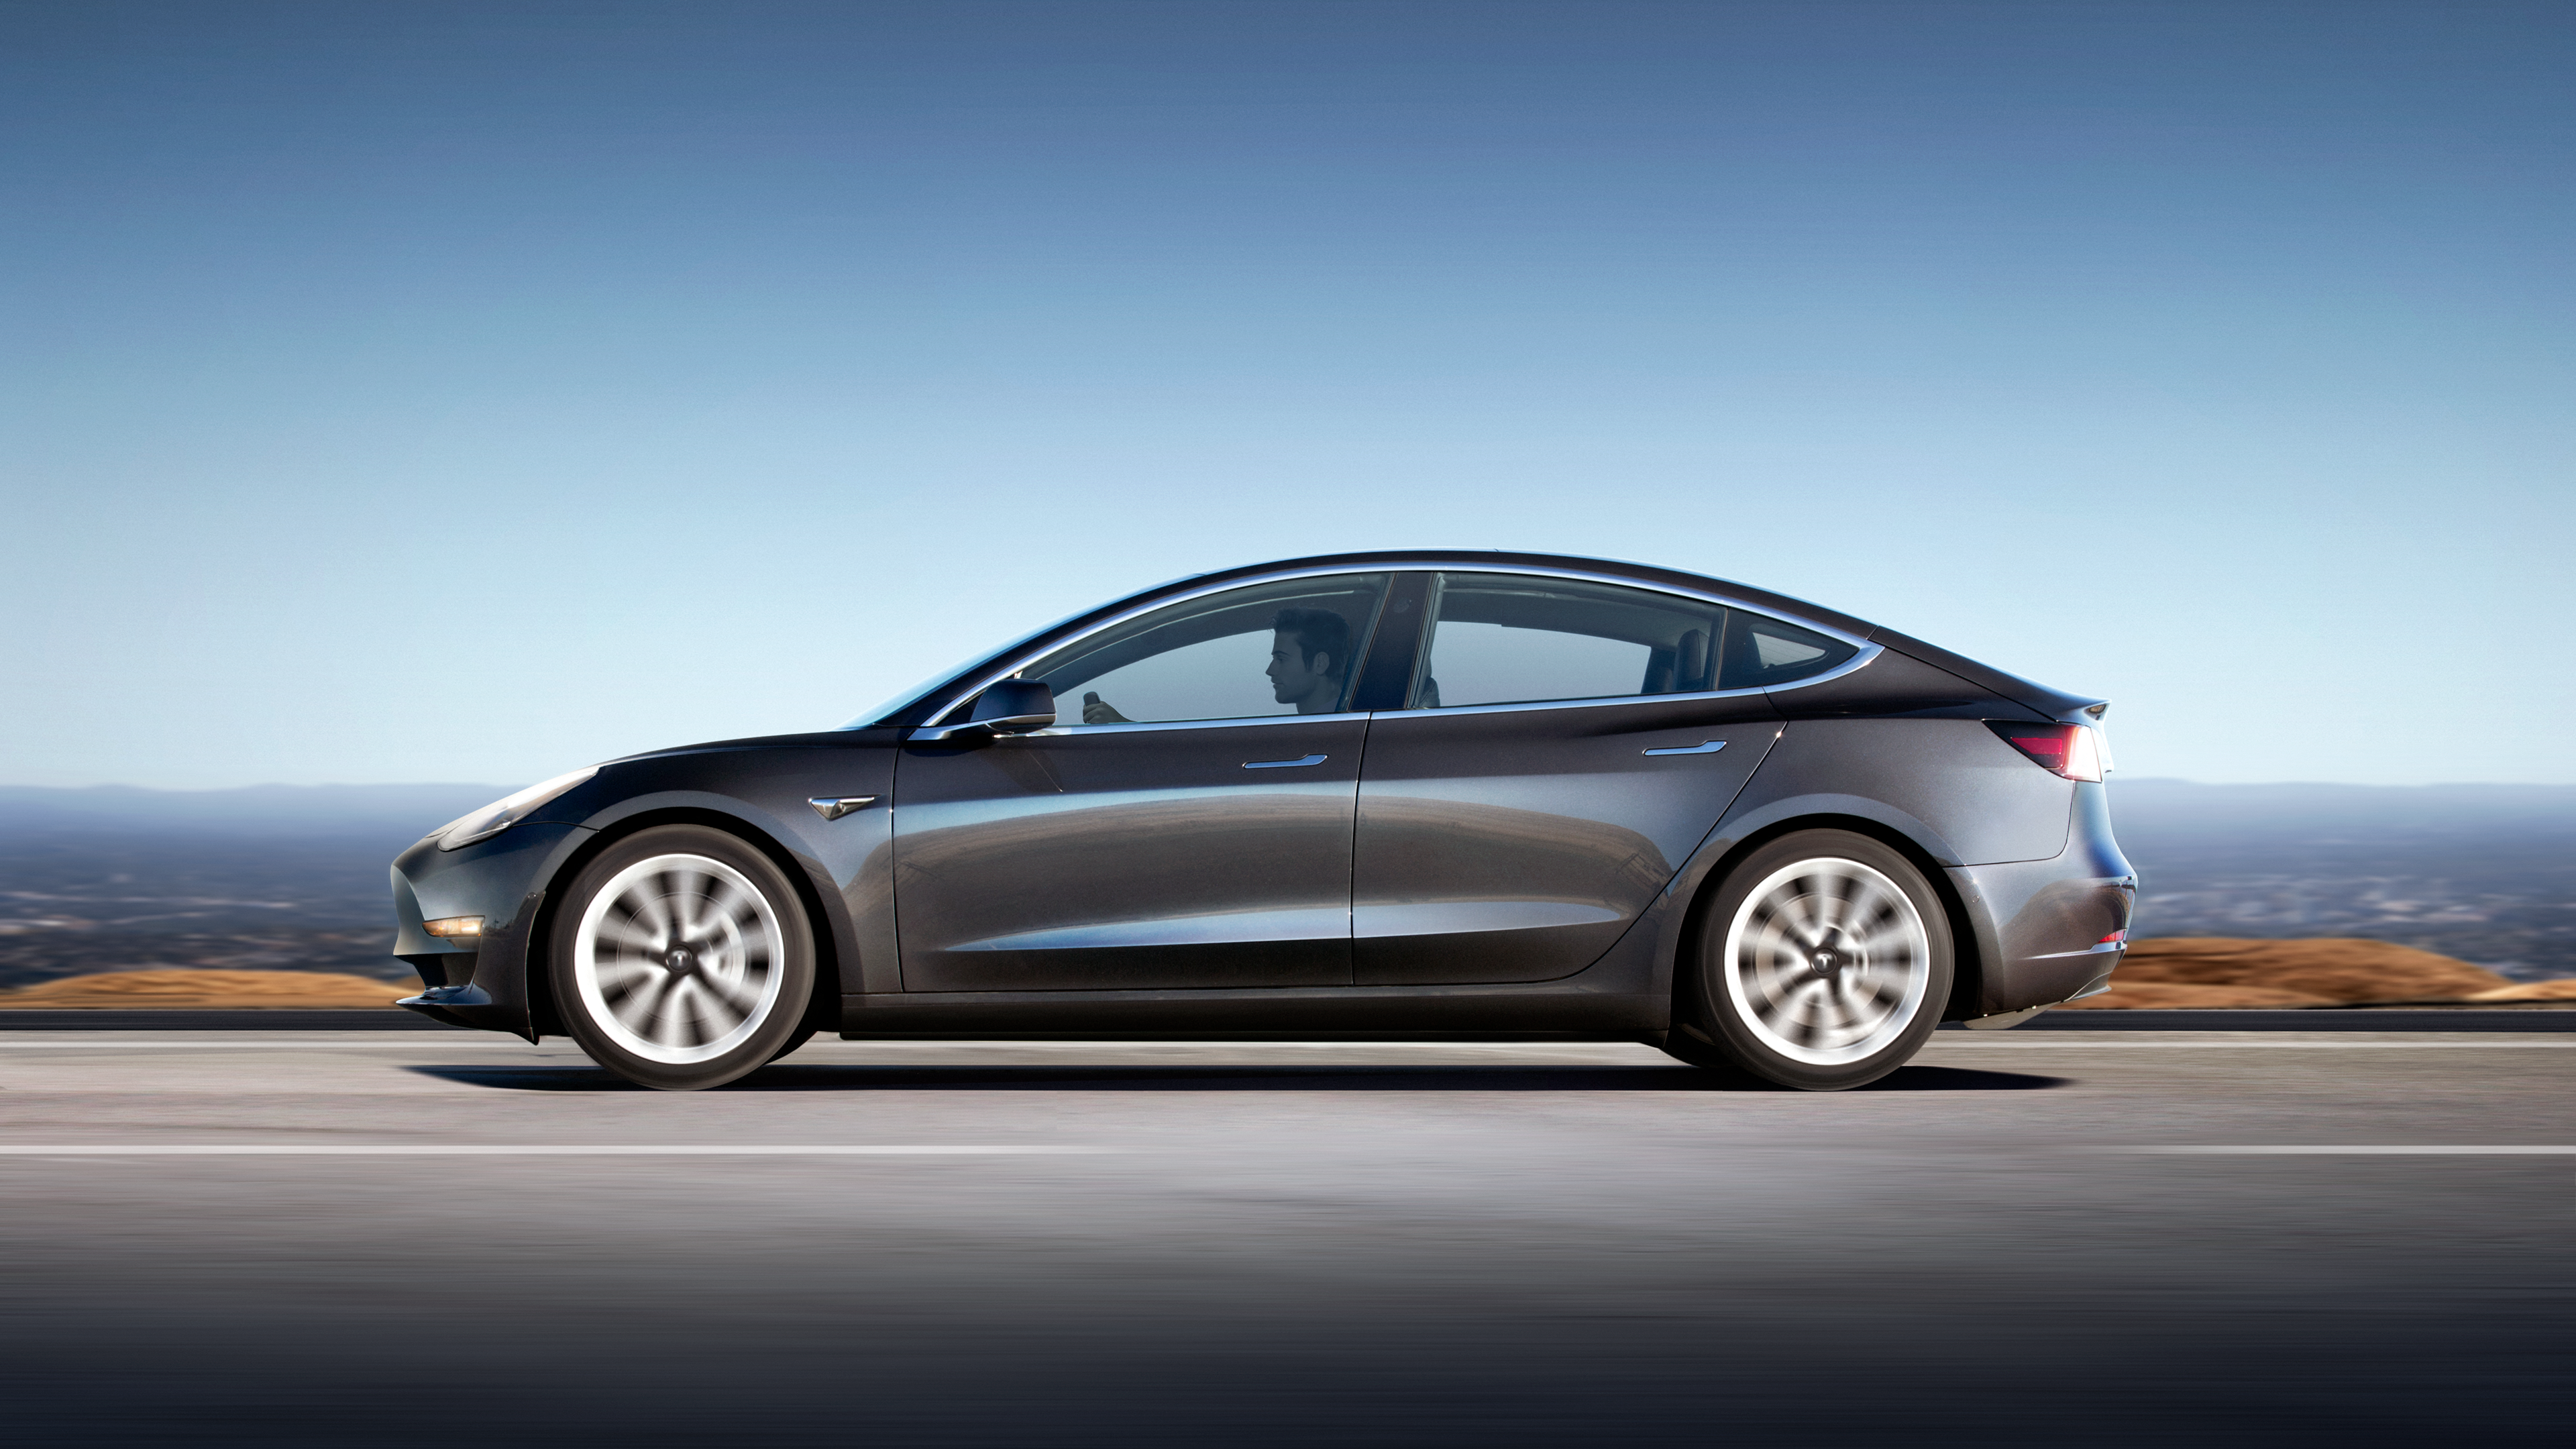 The Tesla Model Y is a 300-mile range Model 3 doppelganger coming in fall 2020